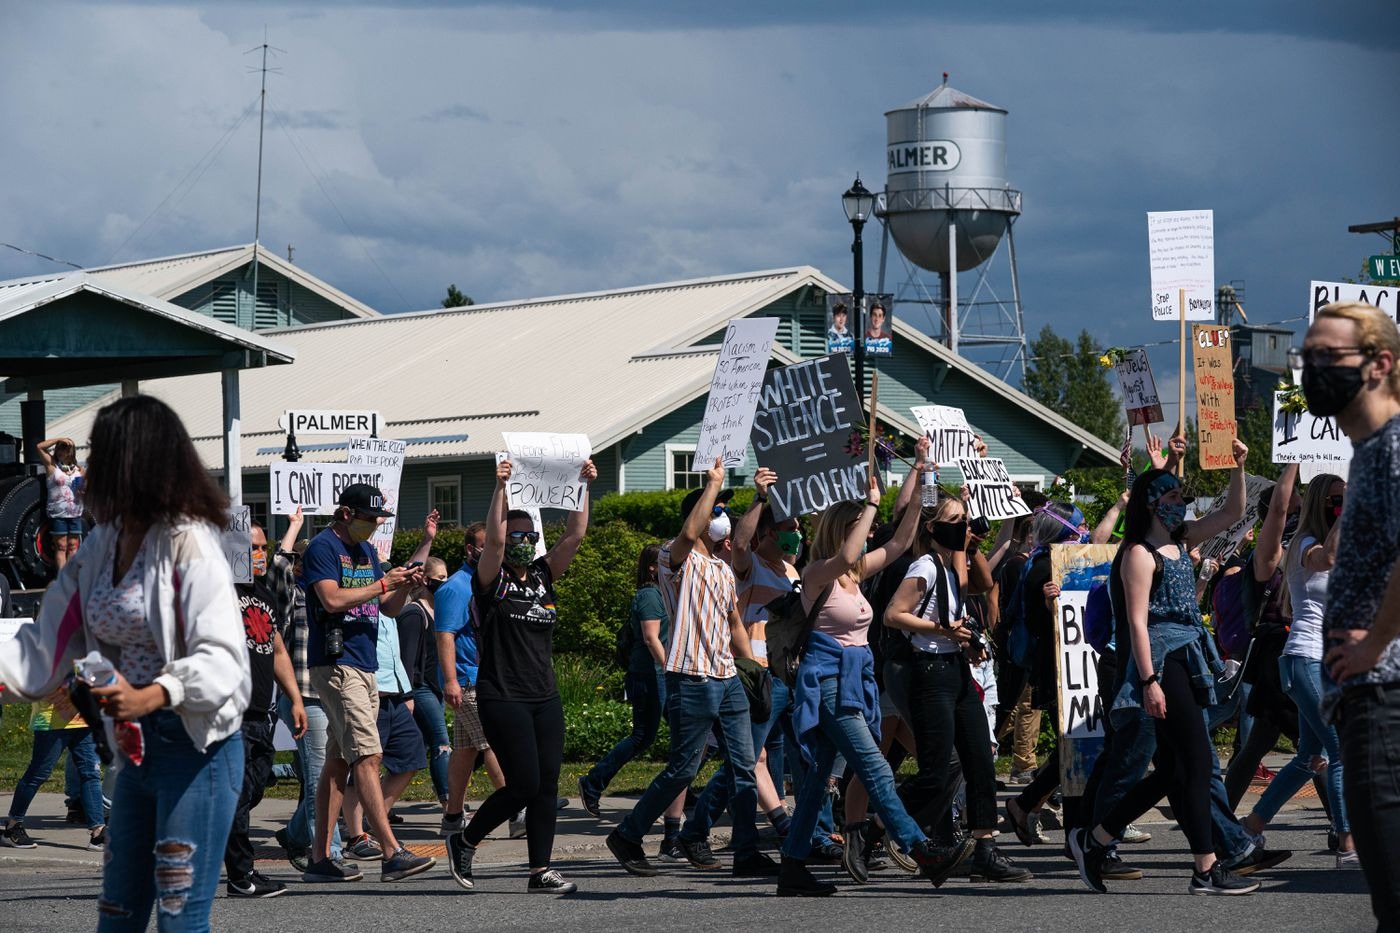 A large crowd marches through Palmer to protest racism and police brutality on Saturday, June 6, 2020. (Loren Holmes / ADN)